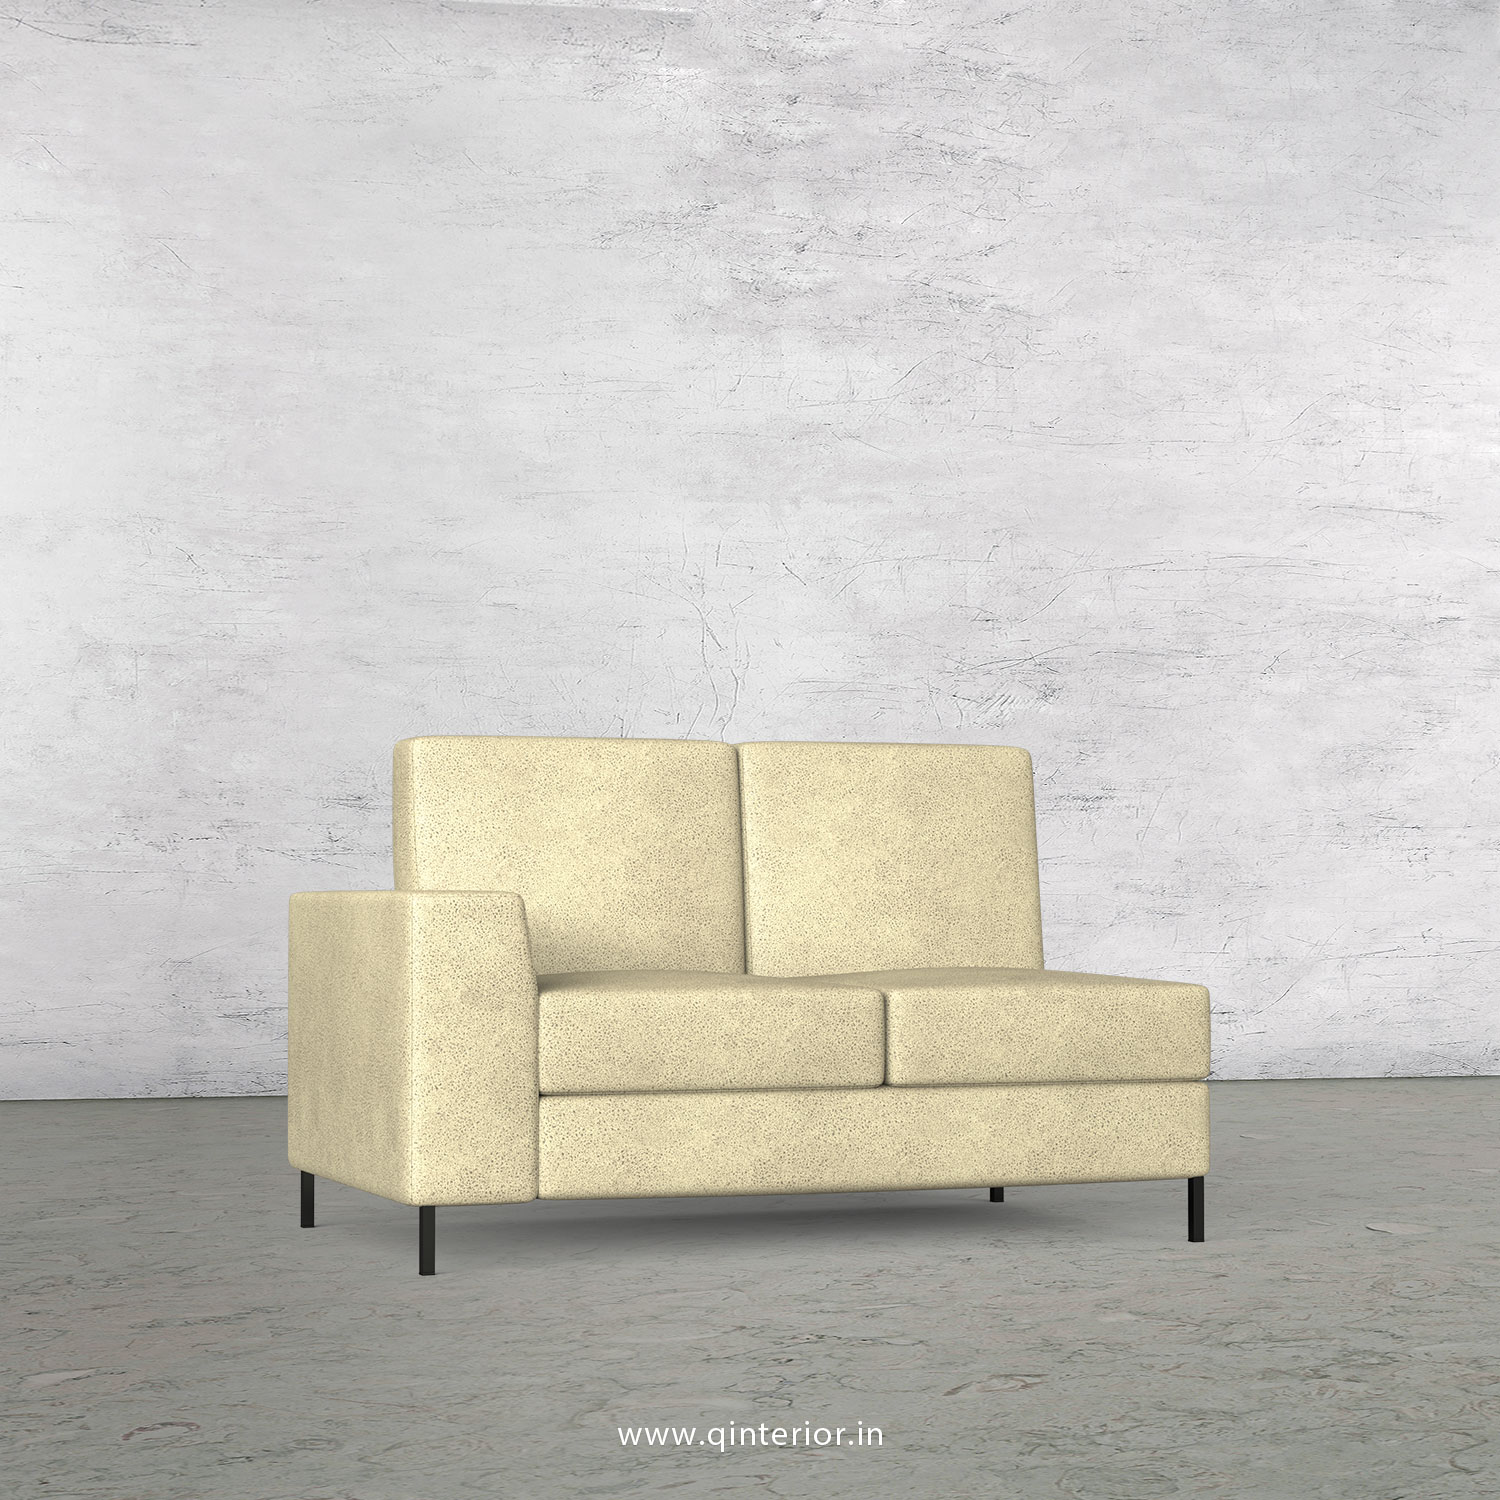 Viva 2 Seater Modular Sofa in Fab Leather Fabric - MSFA002 FL10